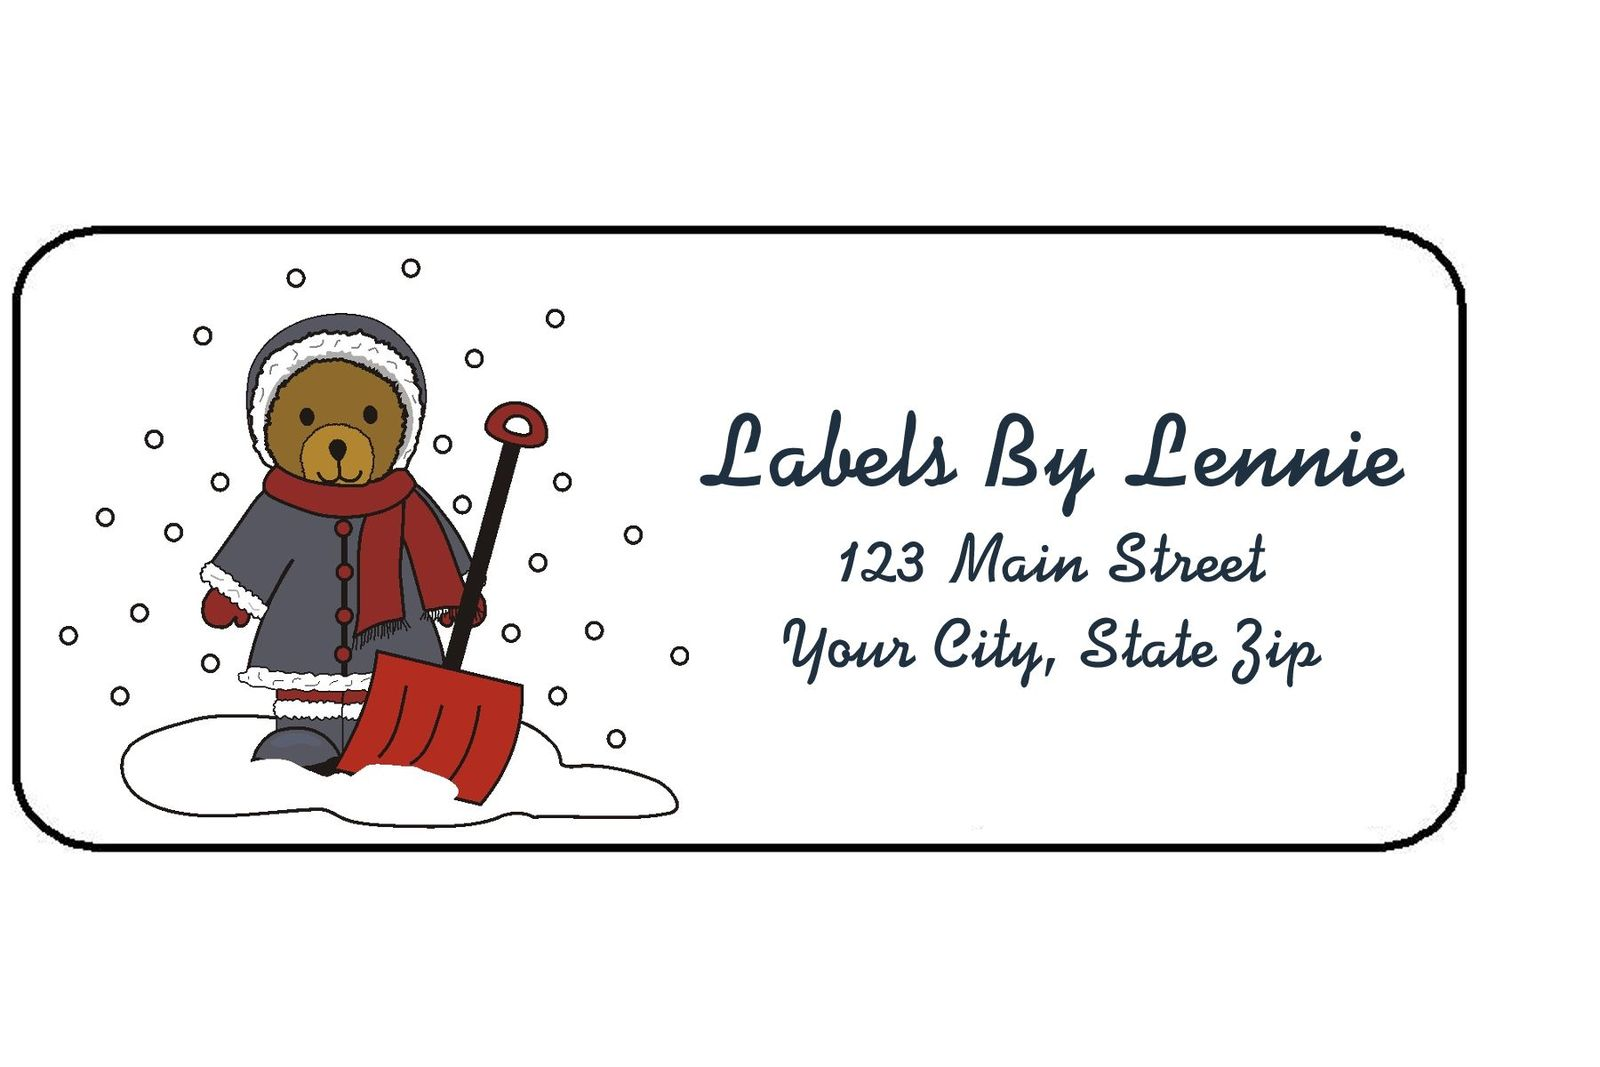 Teddy In The Snow Storm #7 Personalized Return Address Labels